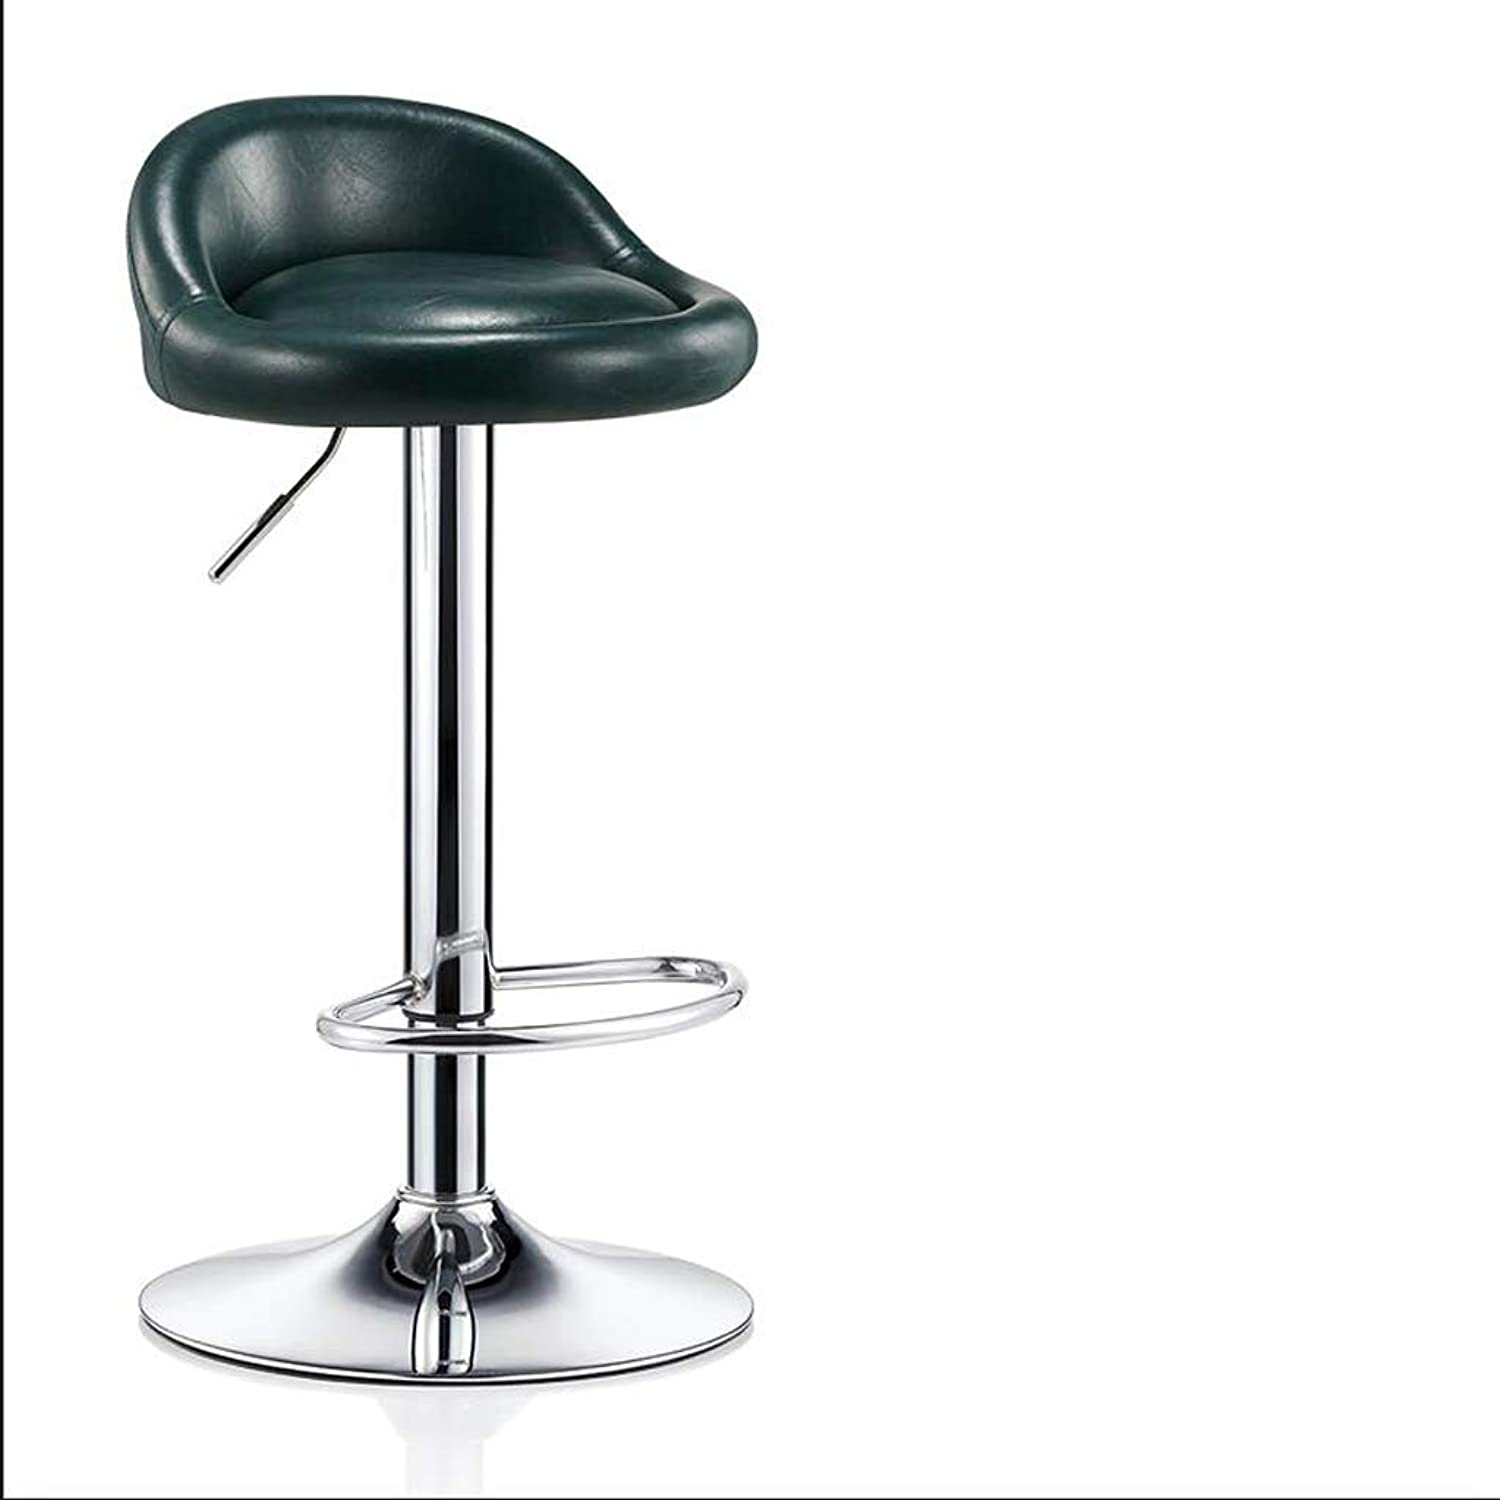 JSSFQK Modern Minimalist High Stools Can Be Backrest Bar Stools Lifting redating Front Bar Chair Home Breakfast Chair bar Chair (color   Green)